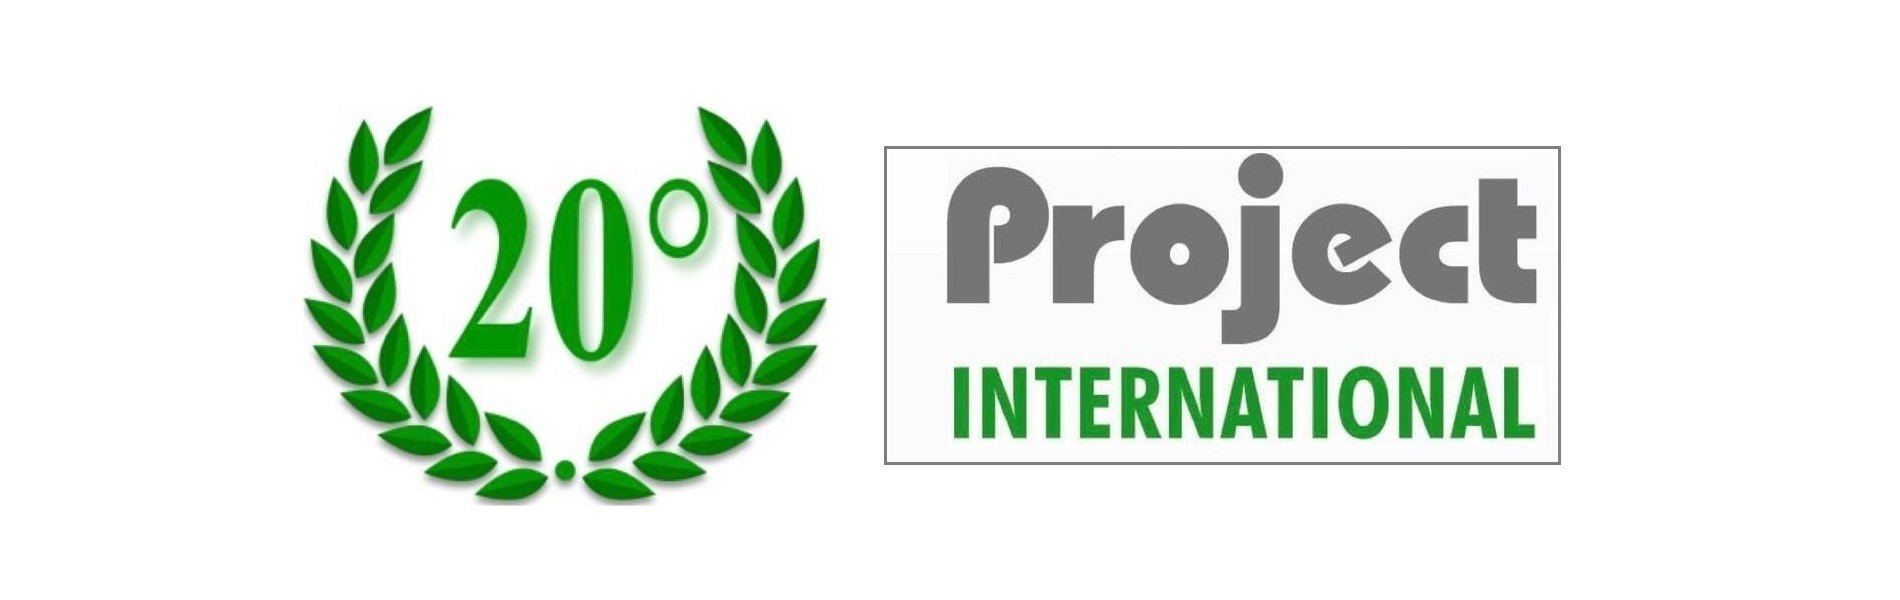 20 years of Project International